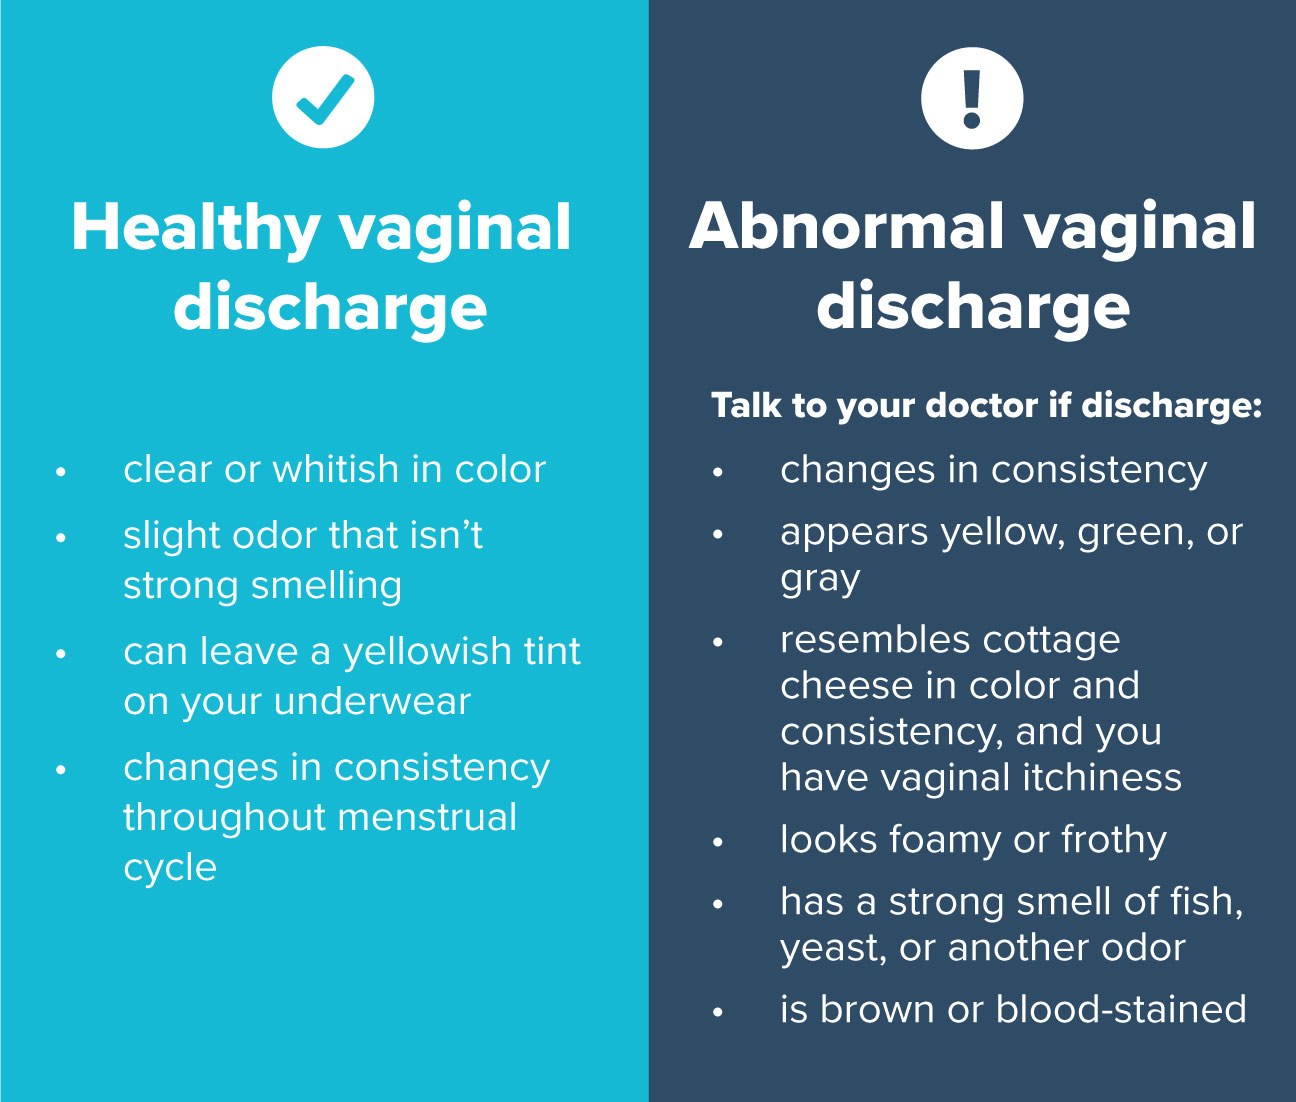 what is vaginal discharge?, Skeleton